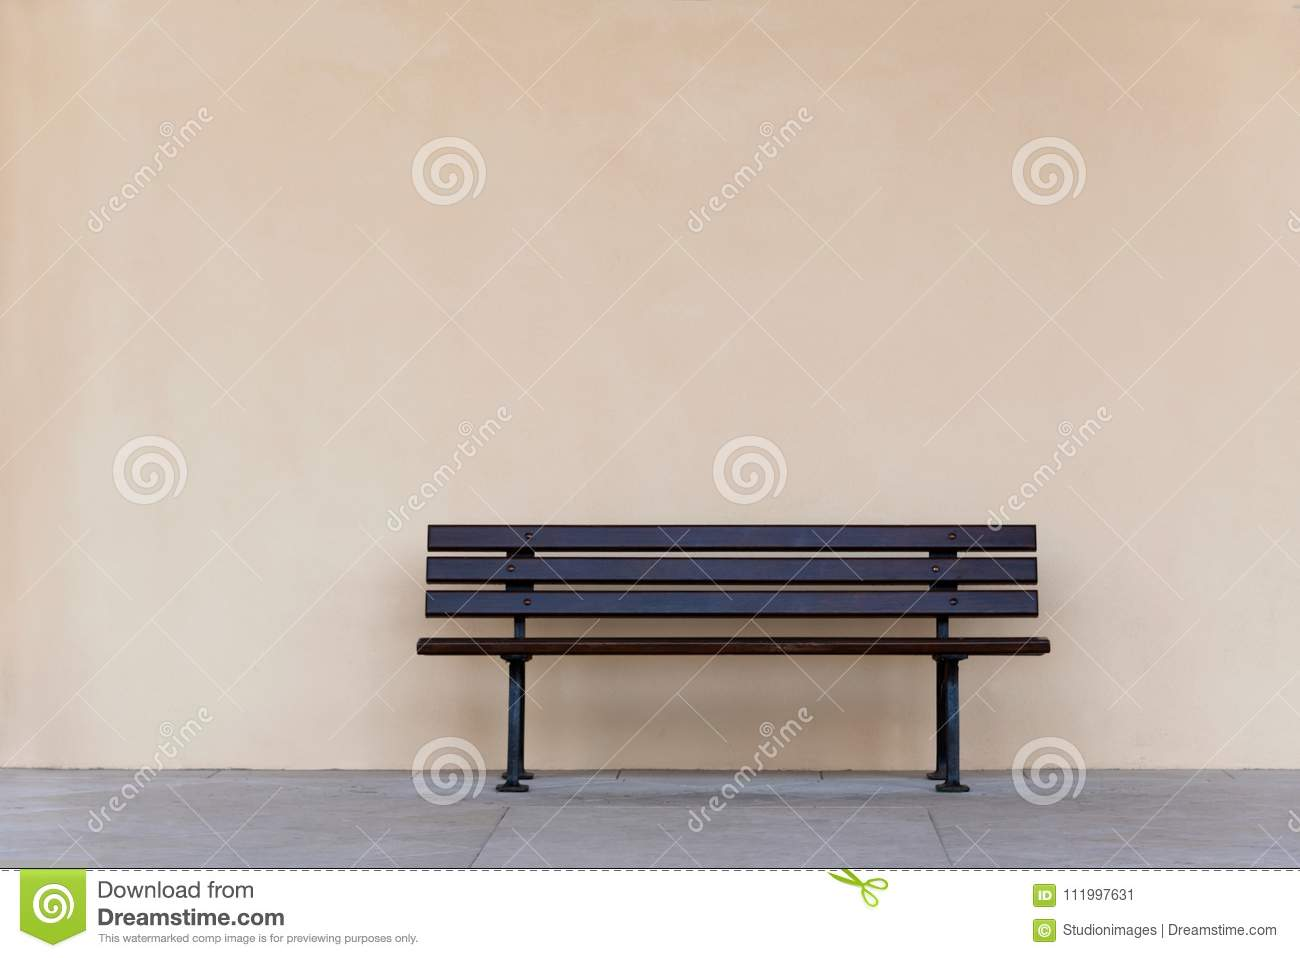 Remarkable Empty Wooden Bench Chair Against Blank Wall Stock Image Onthecornerstone Fun Painted Chair Ideas Images Onthecornerstoneorg